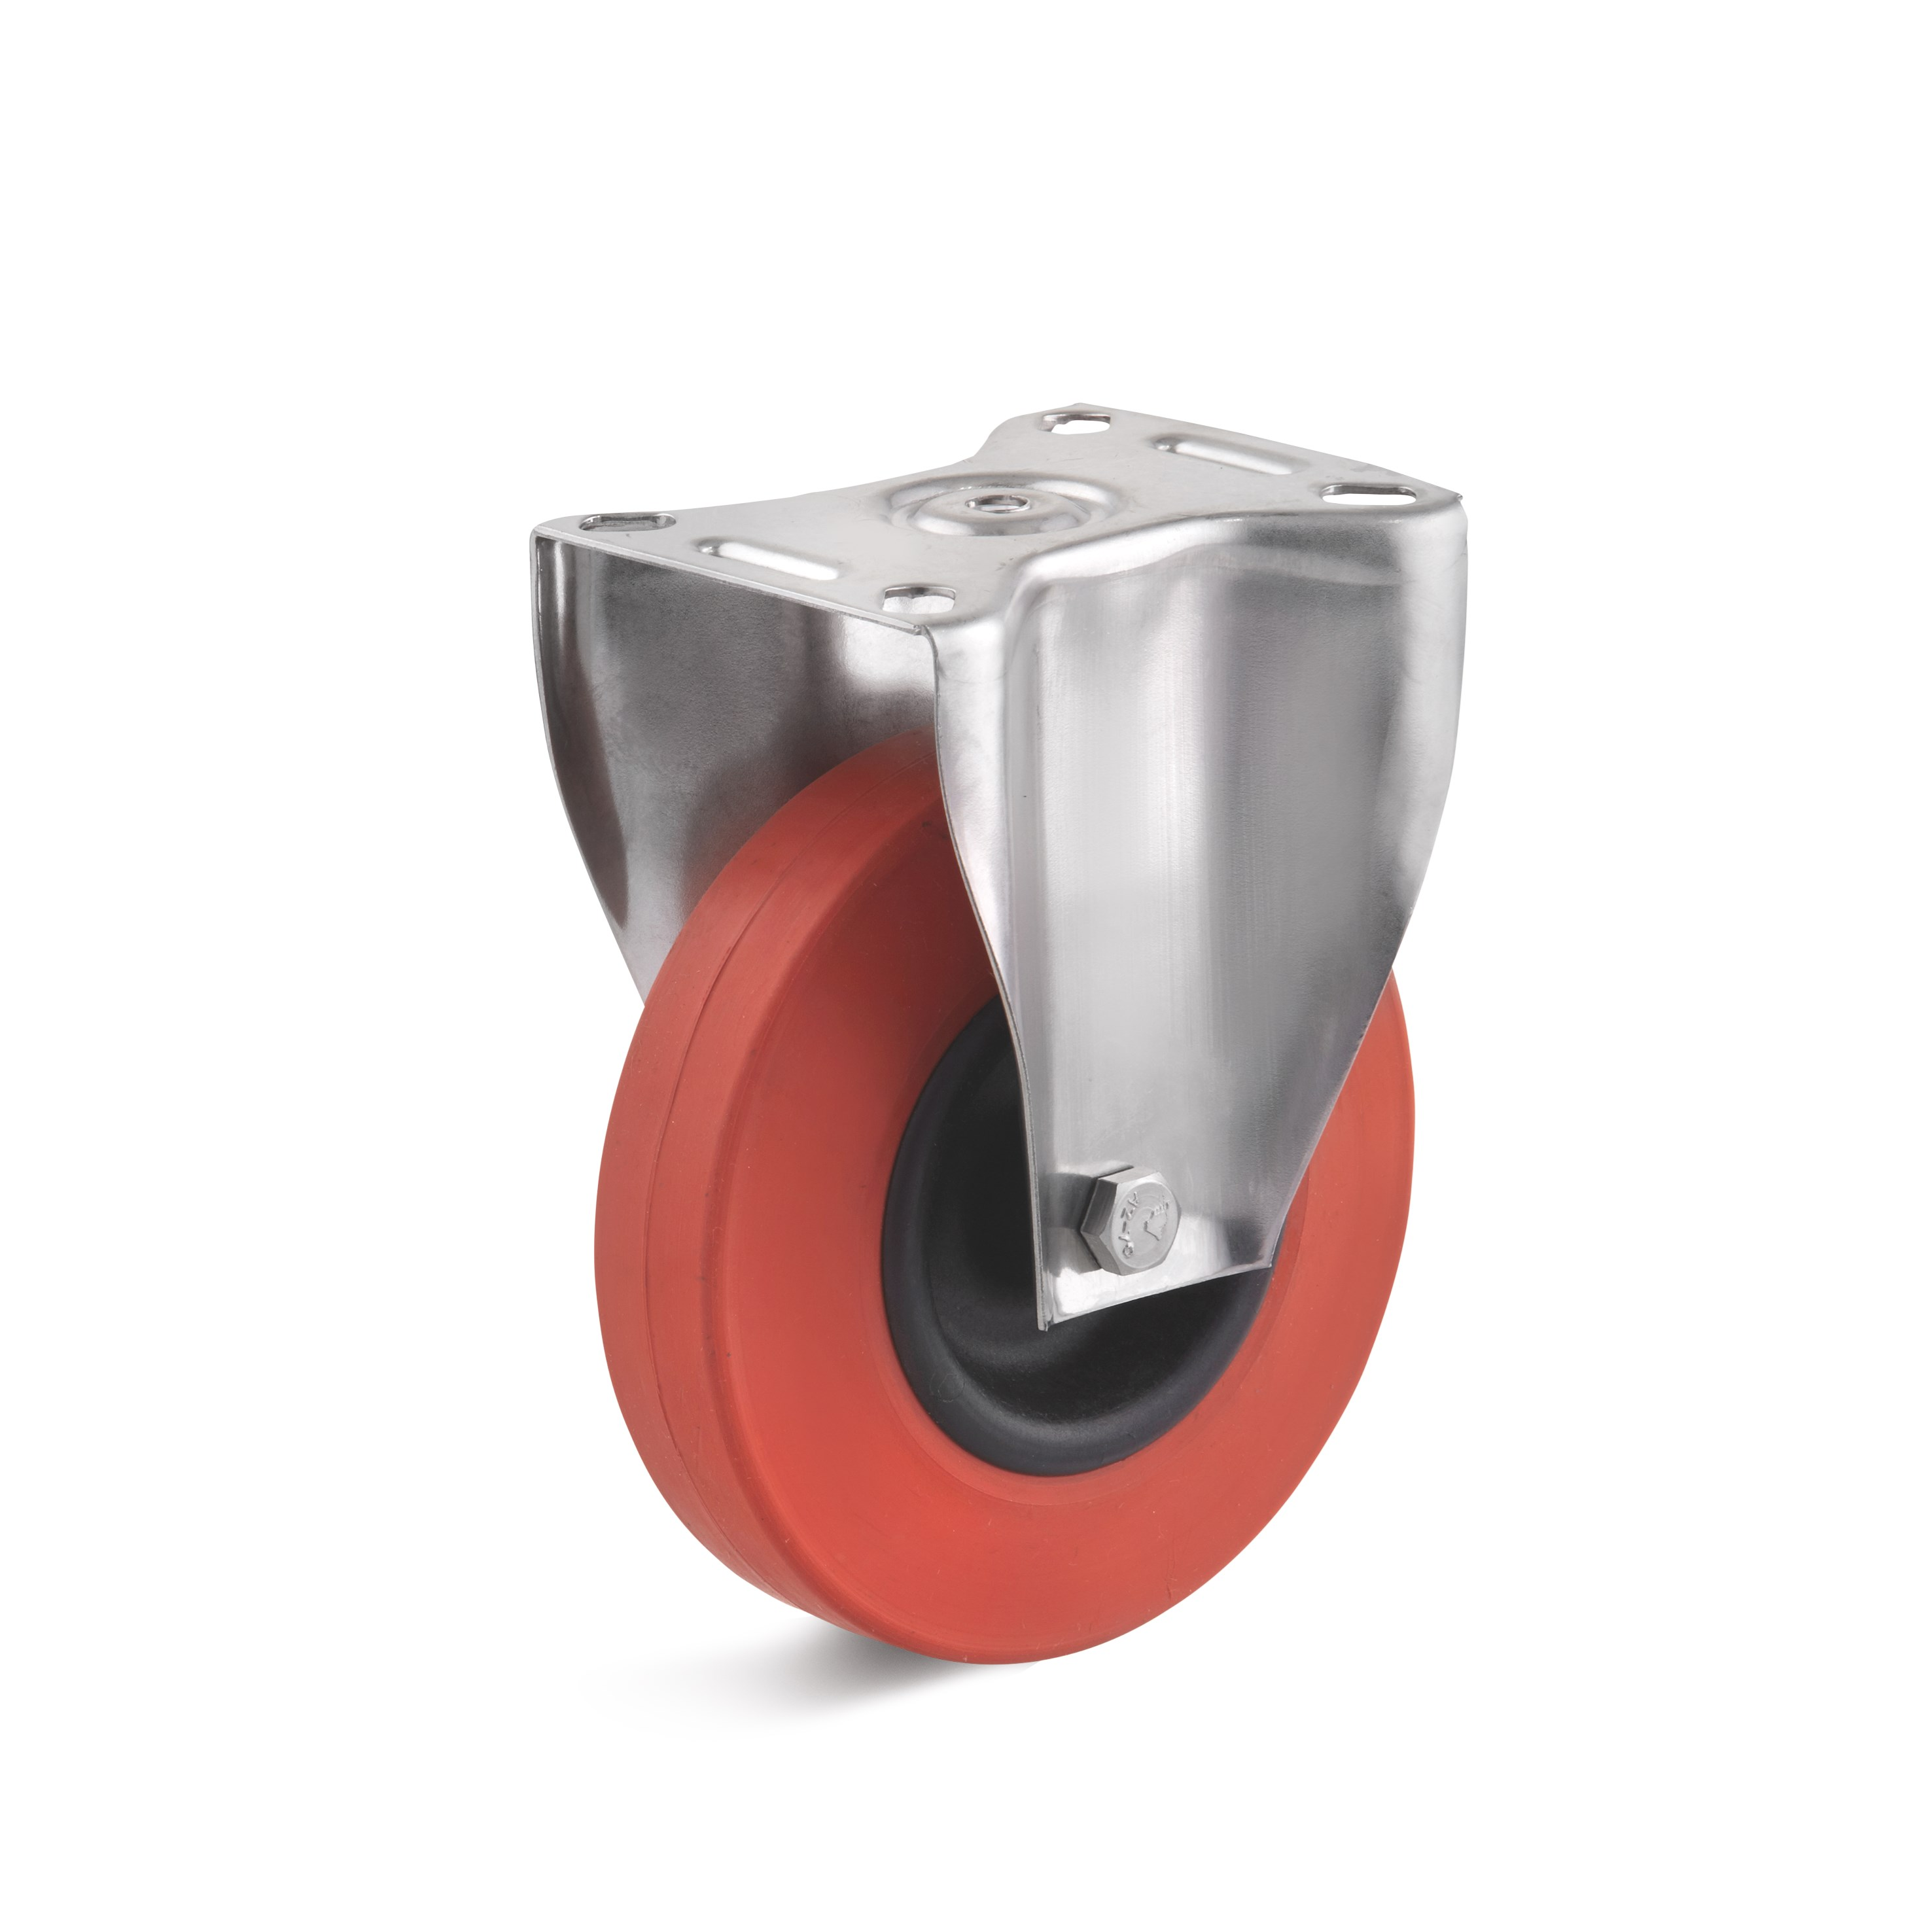 Stainless steel fixed castor with heat-resistant rubber wheel